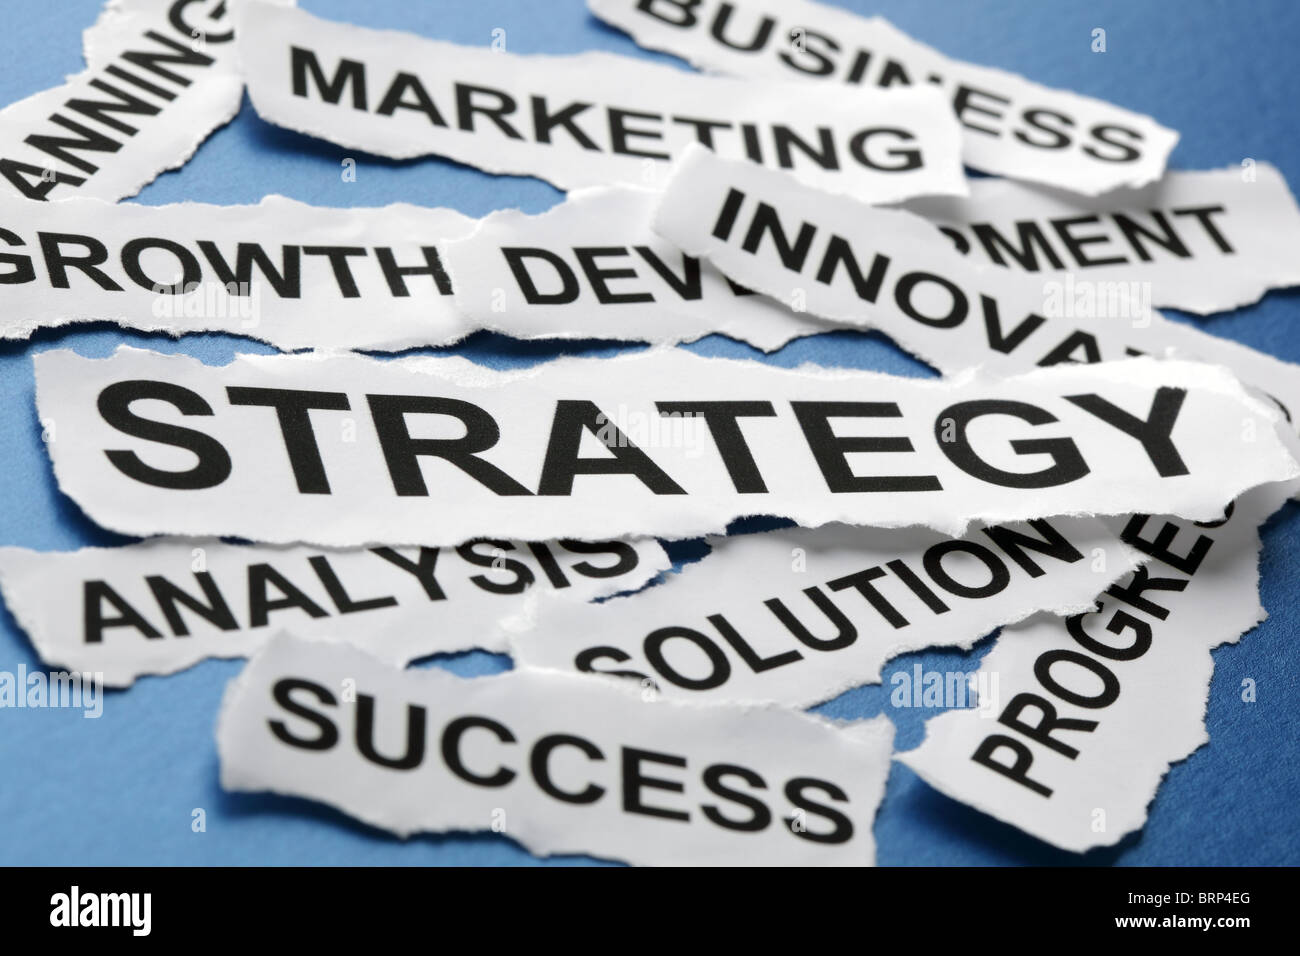 Business strategy - Stock Image